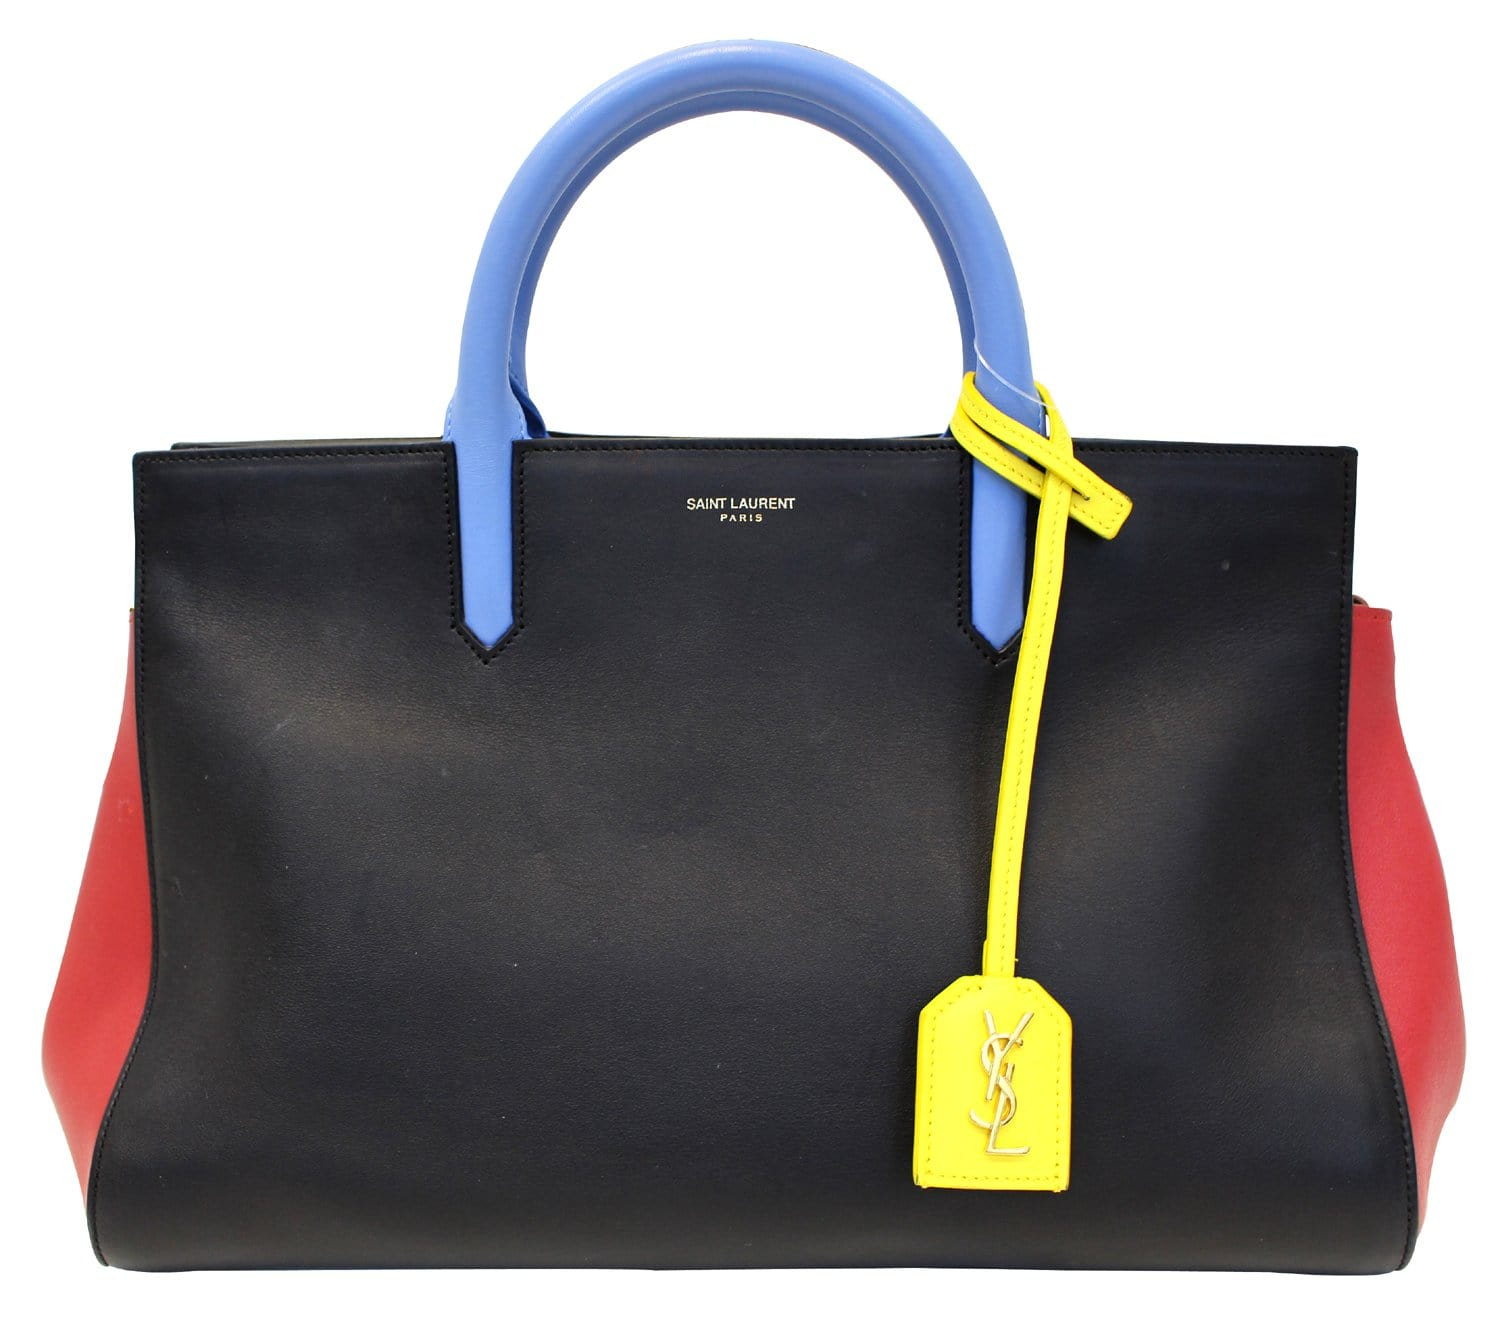 Gauche Laurent Yves Saint Cabas Calfskin Rive Satchel Bag Small qUSzVpM